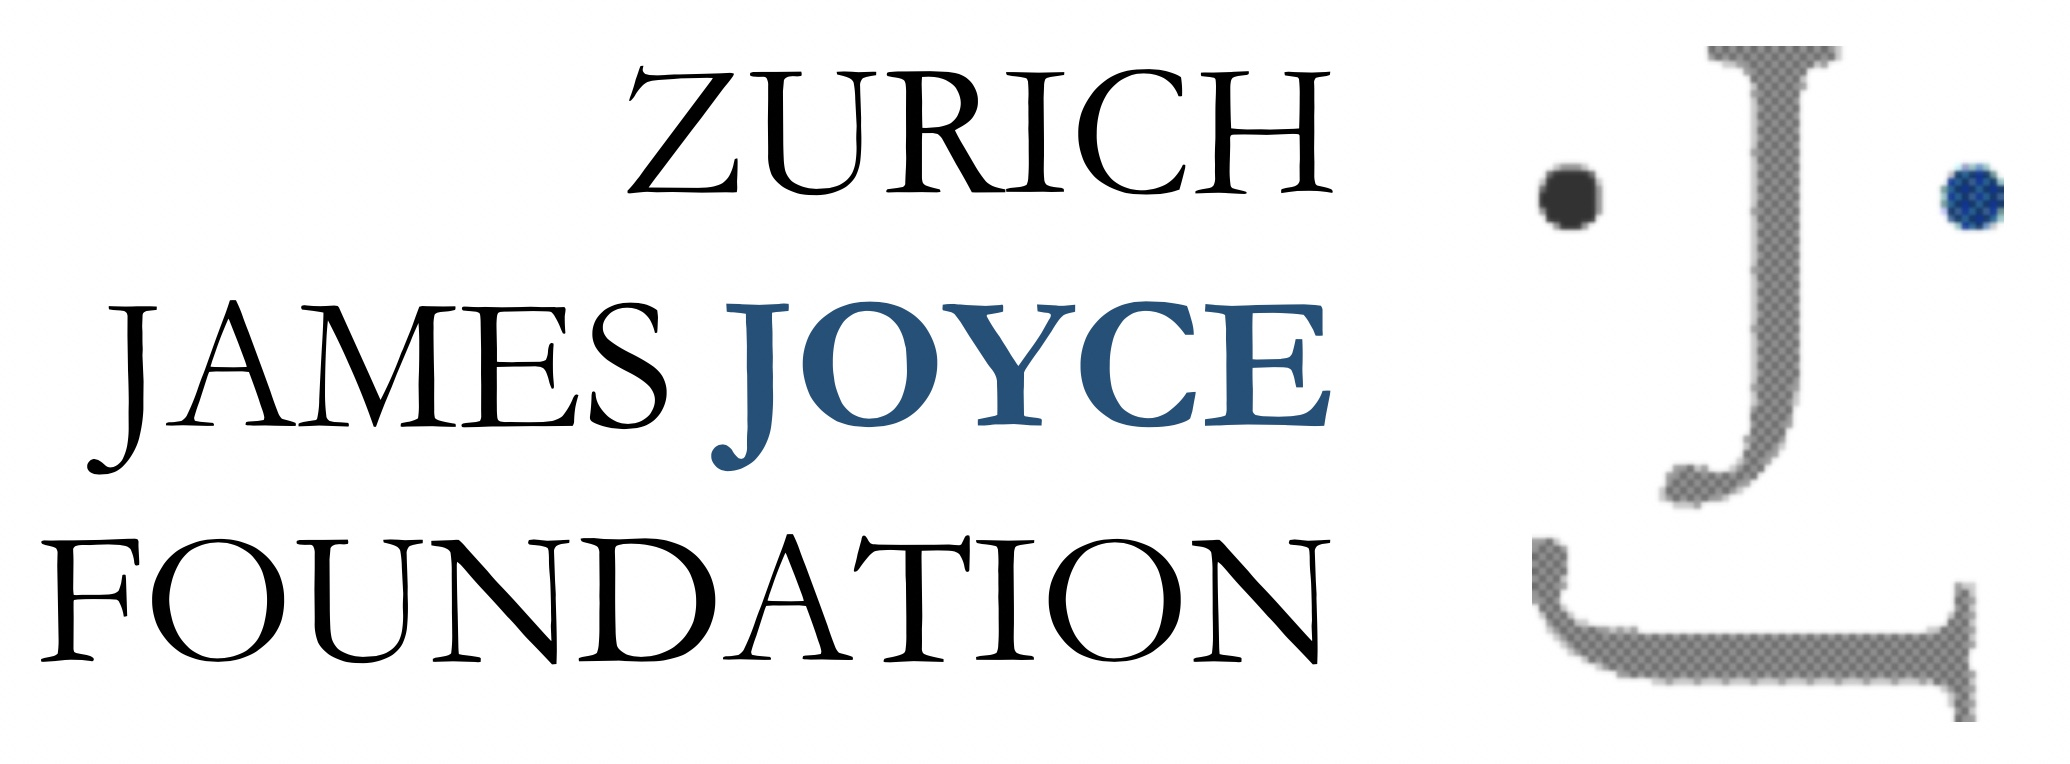 Zurich James Joyce Foundation